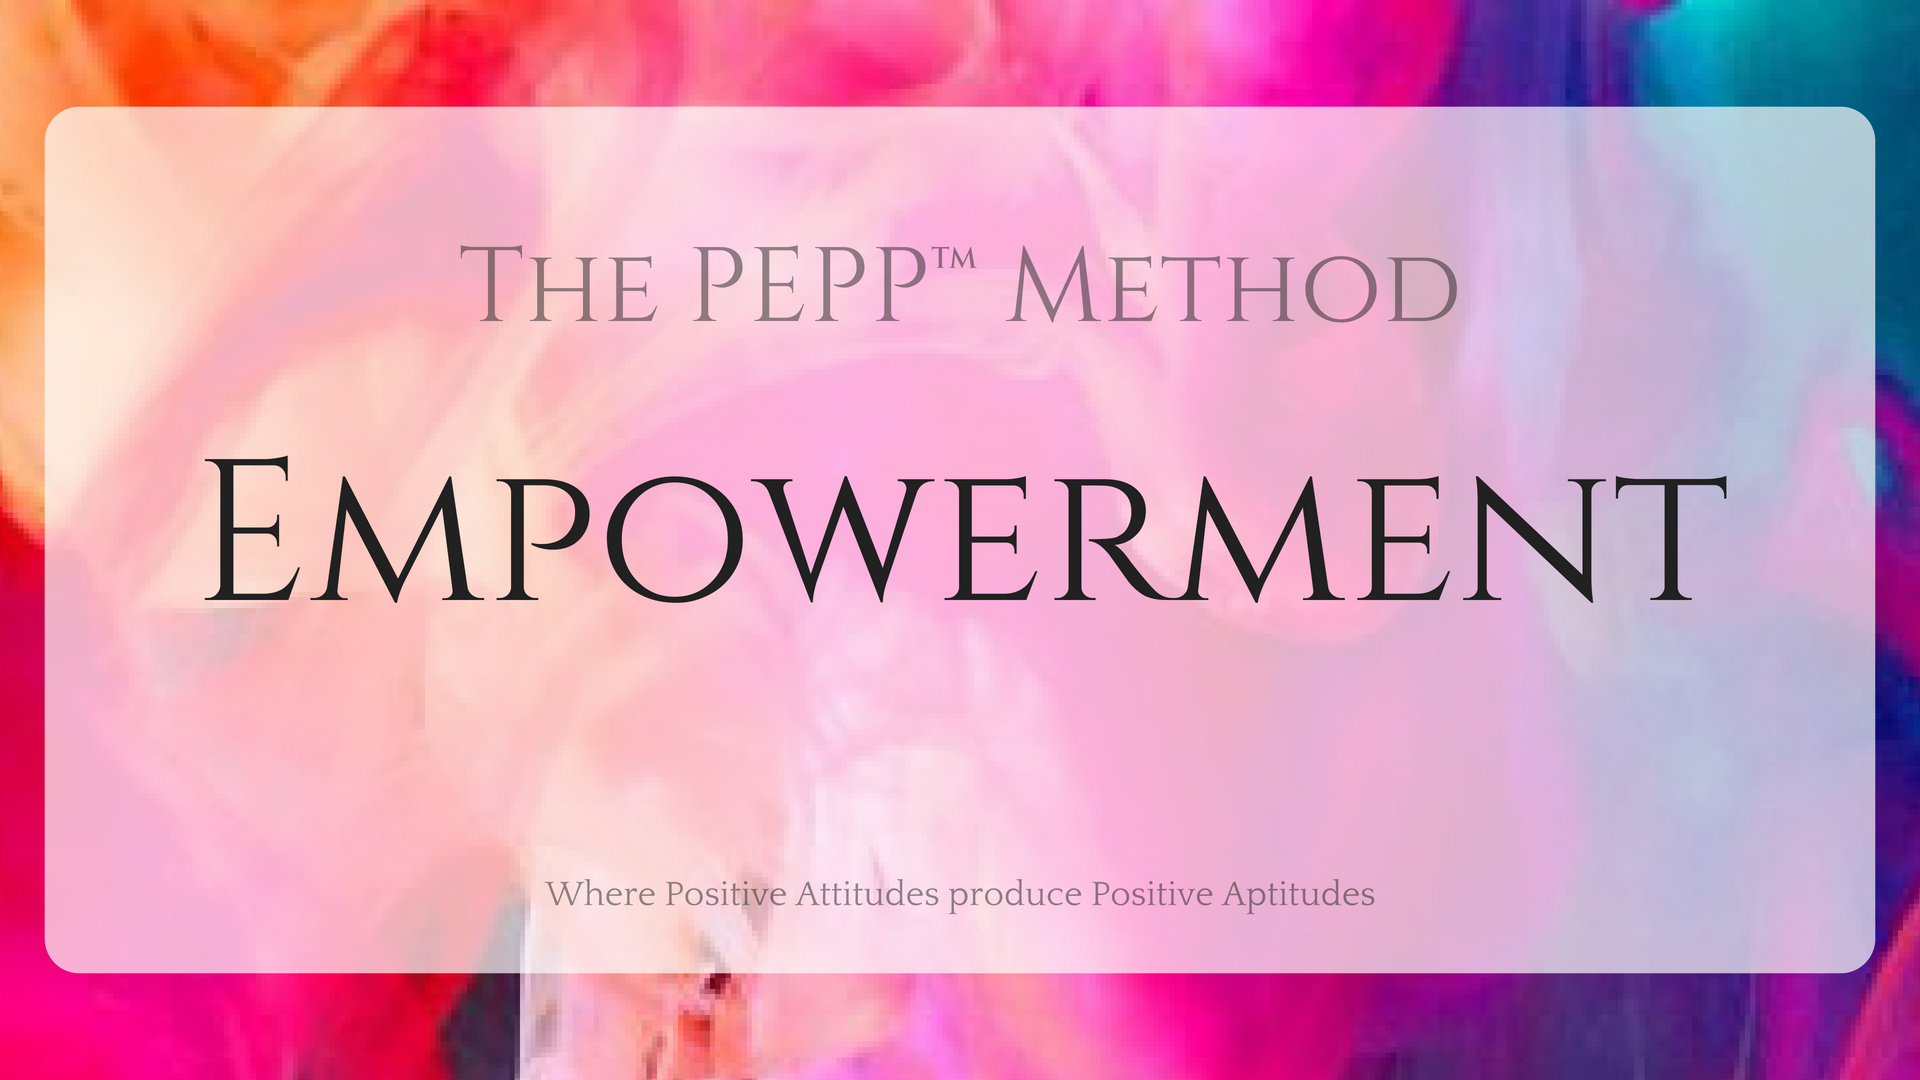 Empowerment - The PEPP™ Method